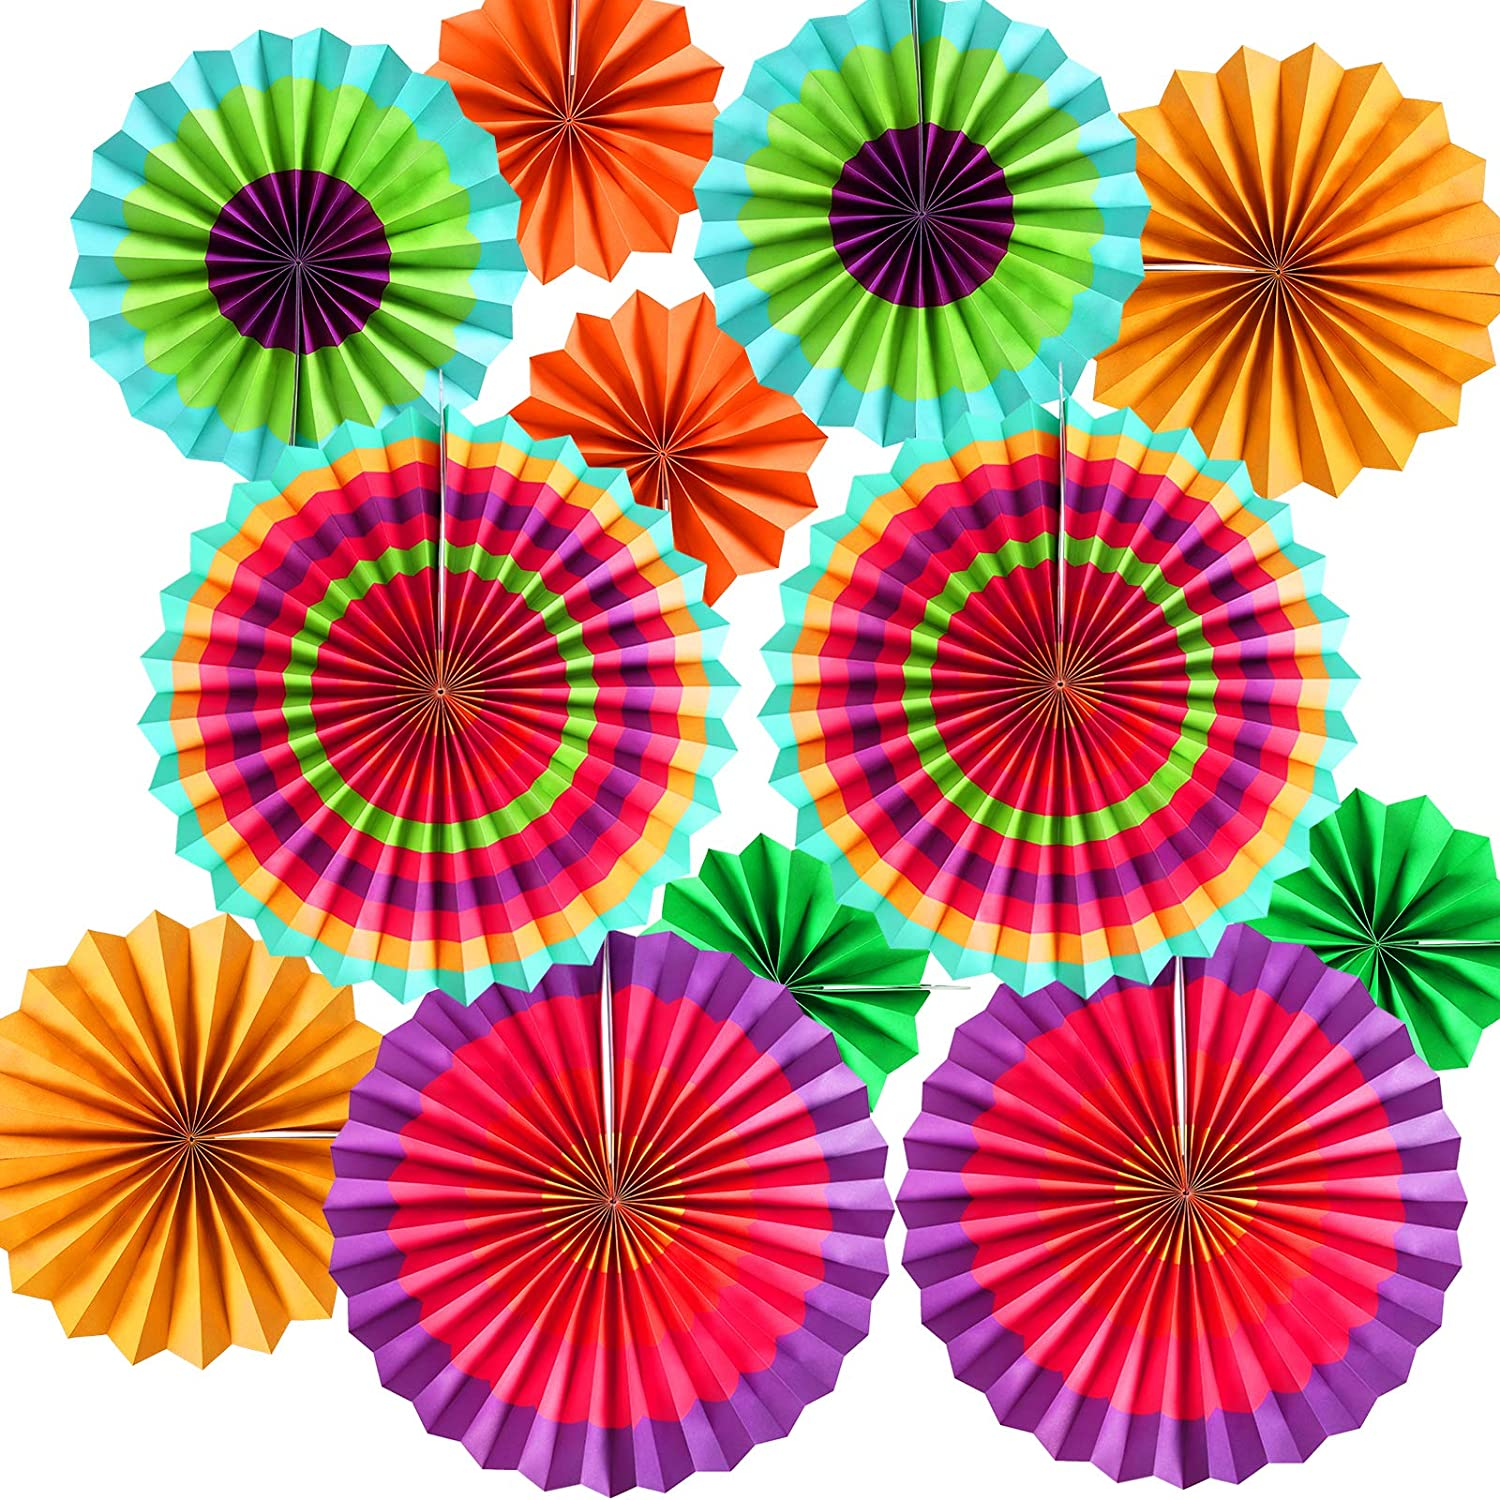 Set Of 6 Fabulous Purple Paper Fan Hanging Decorations in 3 Sizes! Fun Colorful Party Decor!